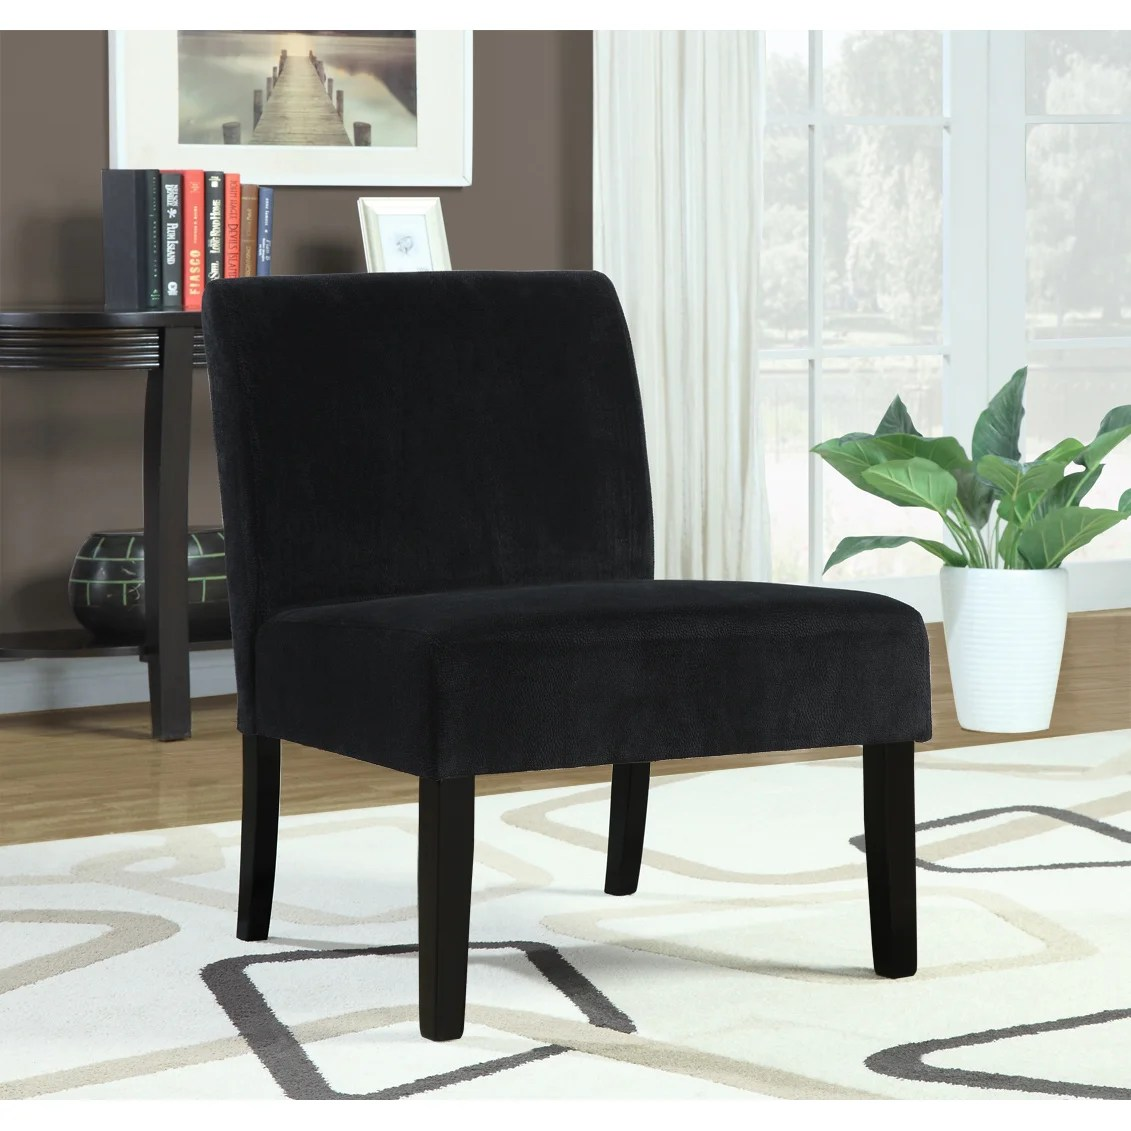 Black Velvet Chair Black Crocodile Velvet Accent Chair 14349421 Overstock